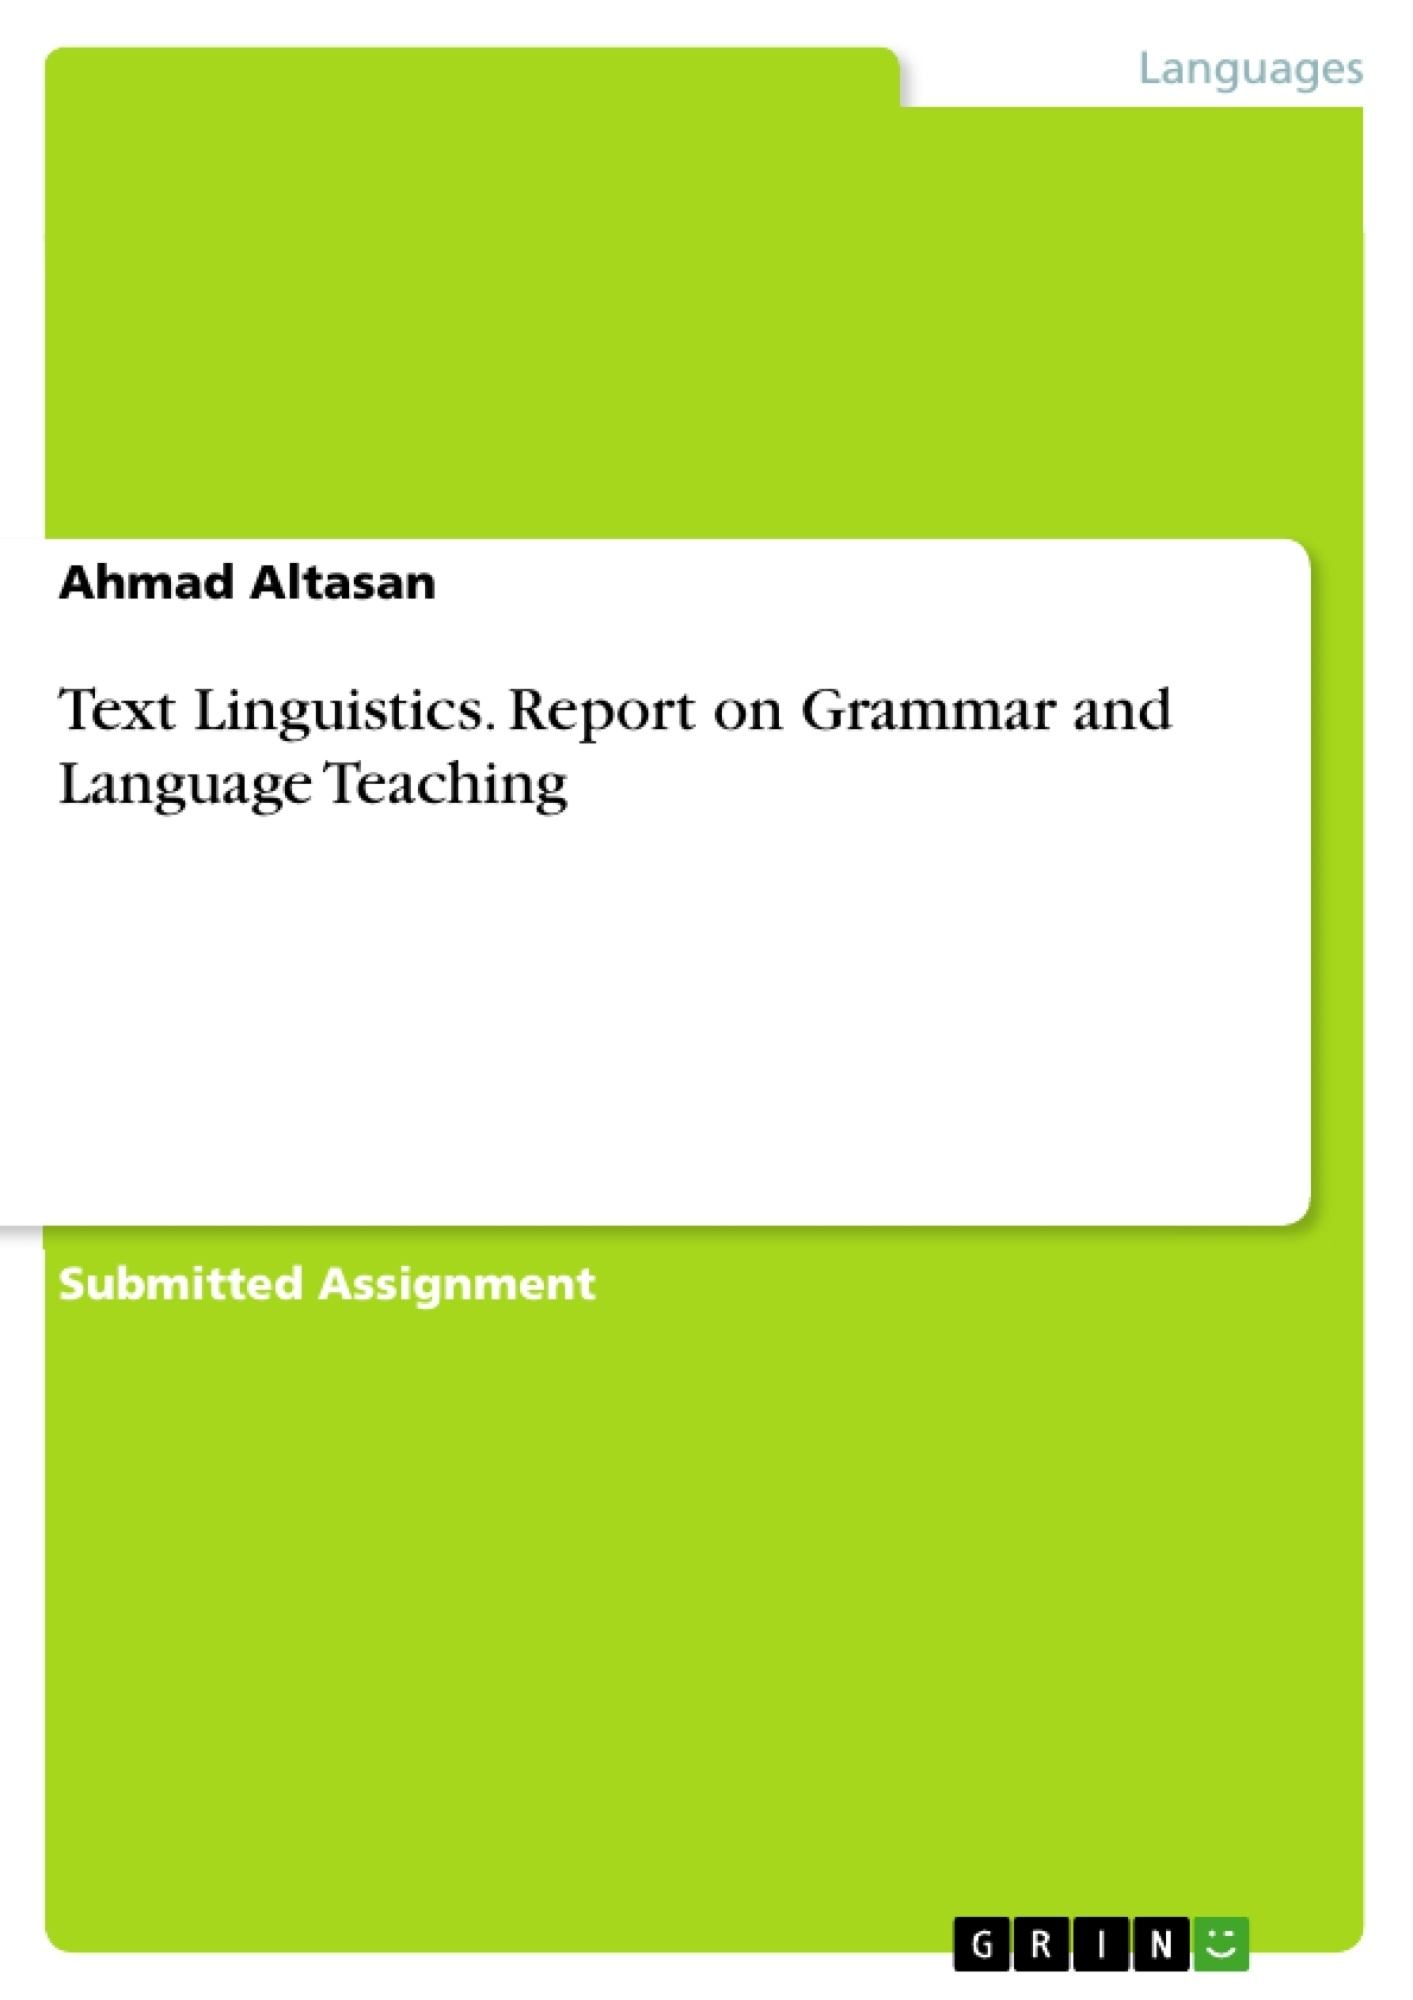 Title: Text Linguistics. Report on Grammar and Language Teaching